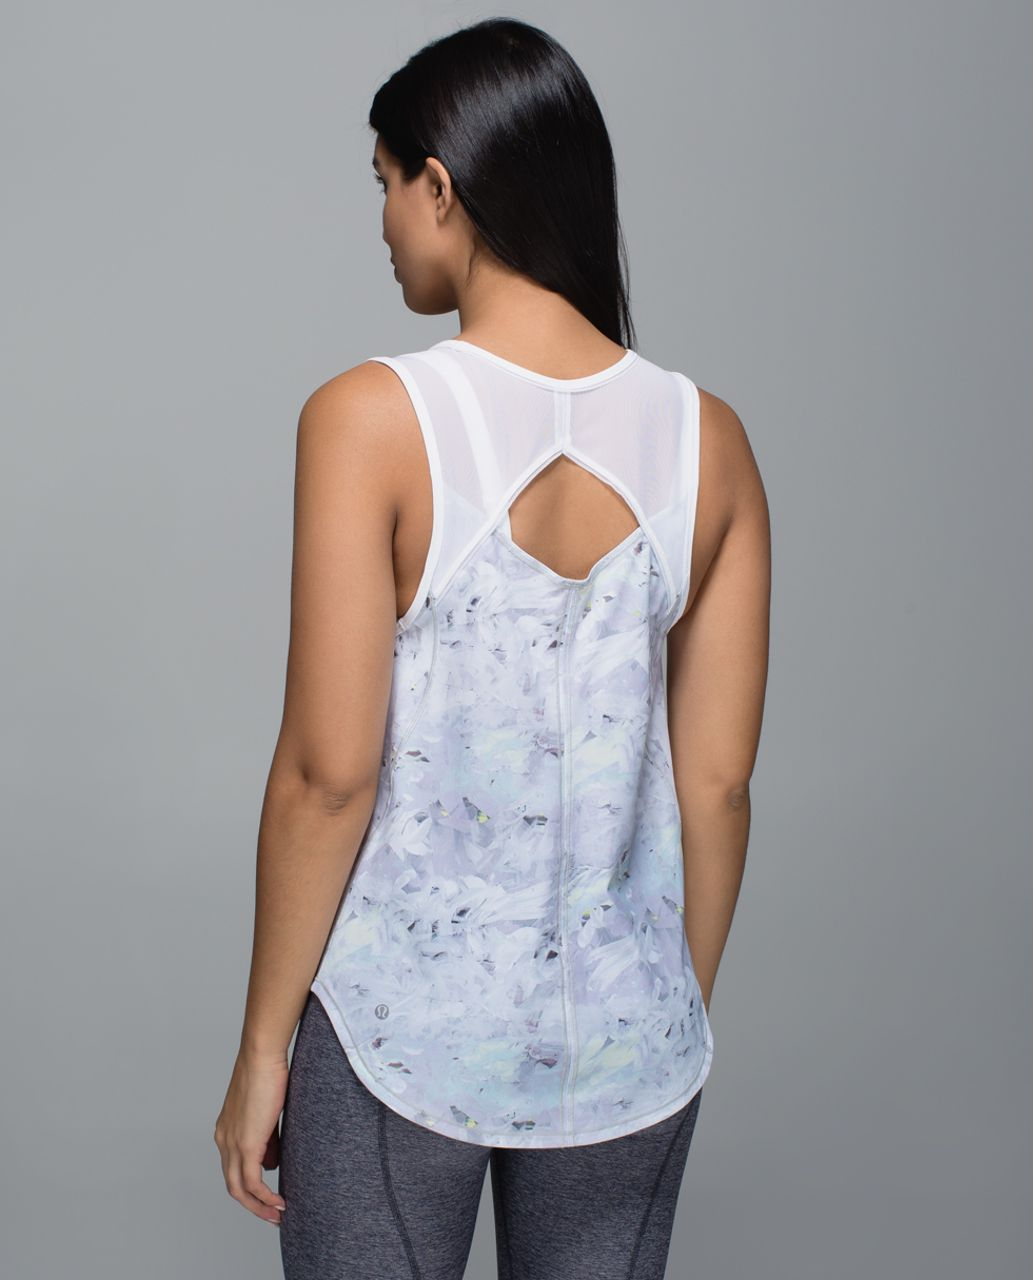 Lululemon Sculpt Tank - Mini Blushed Illusion White Multi / White